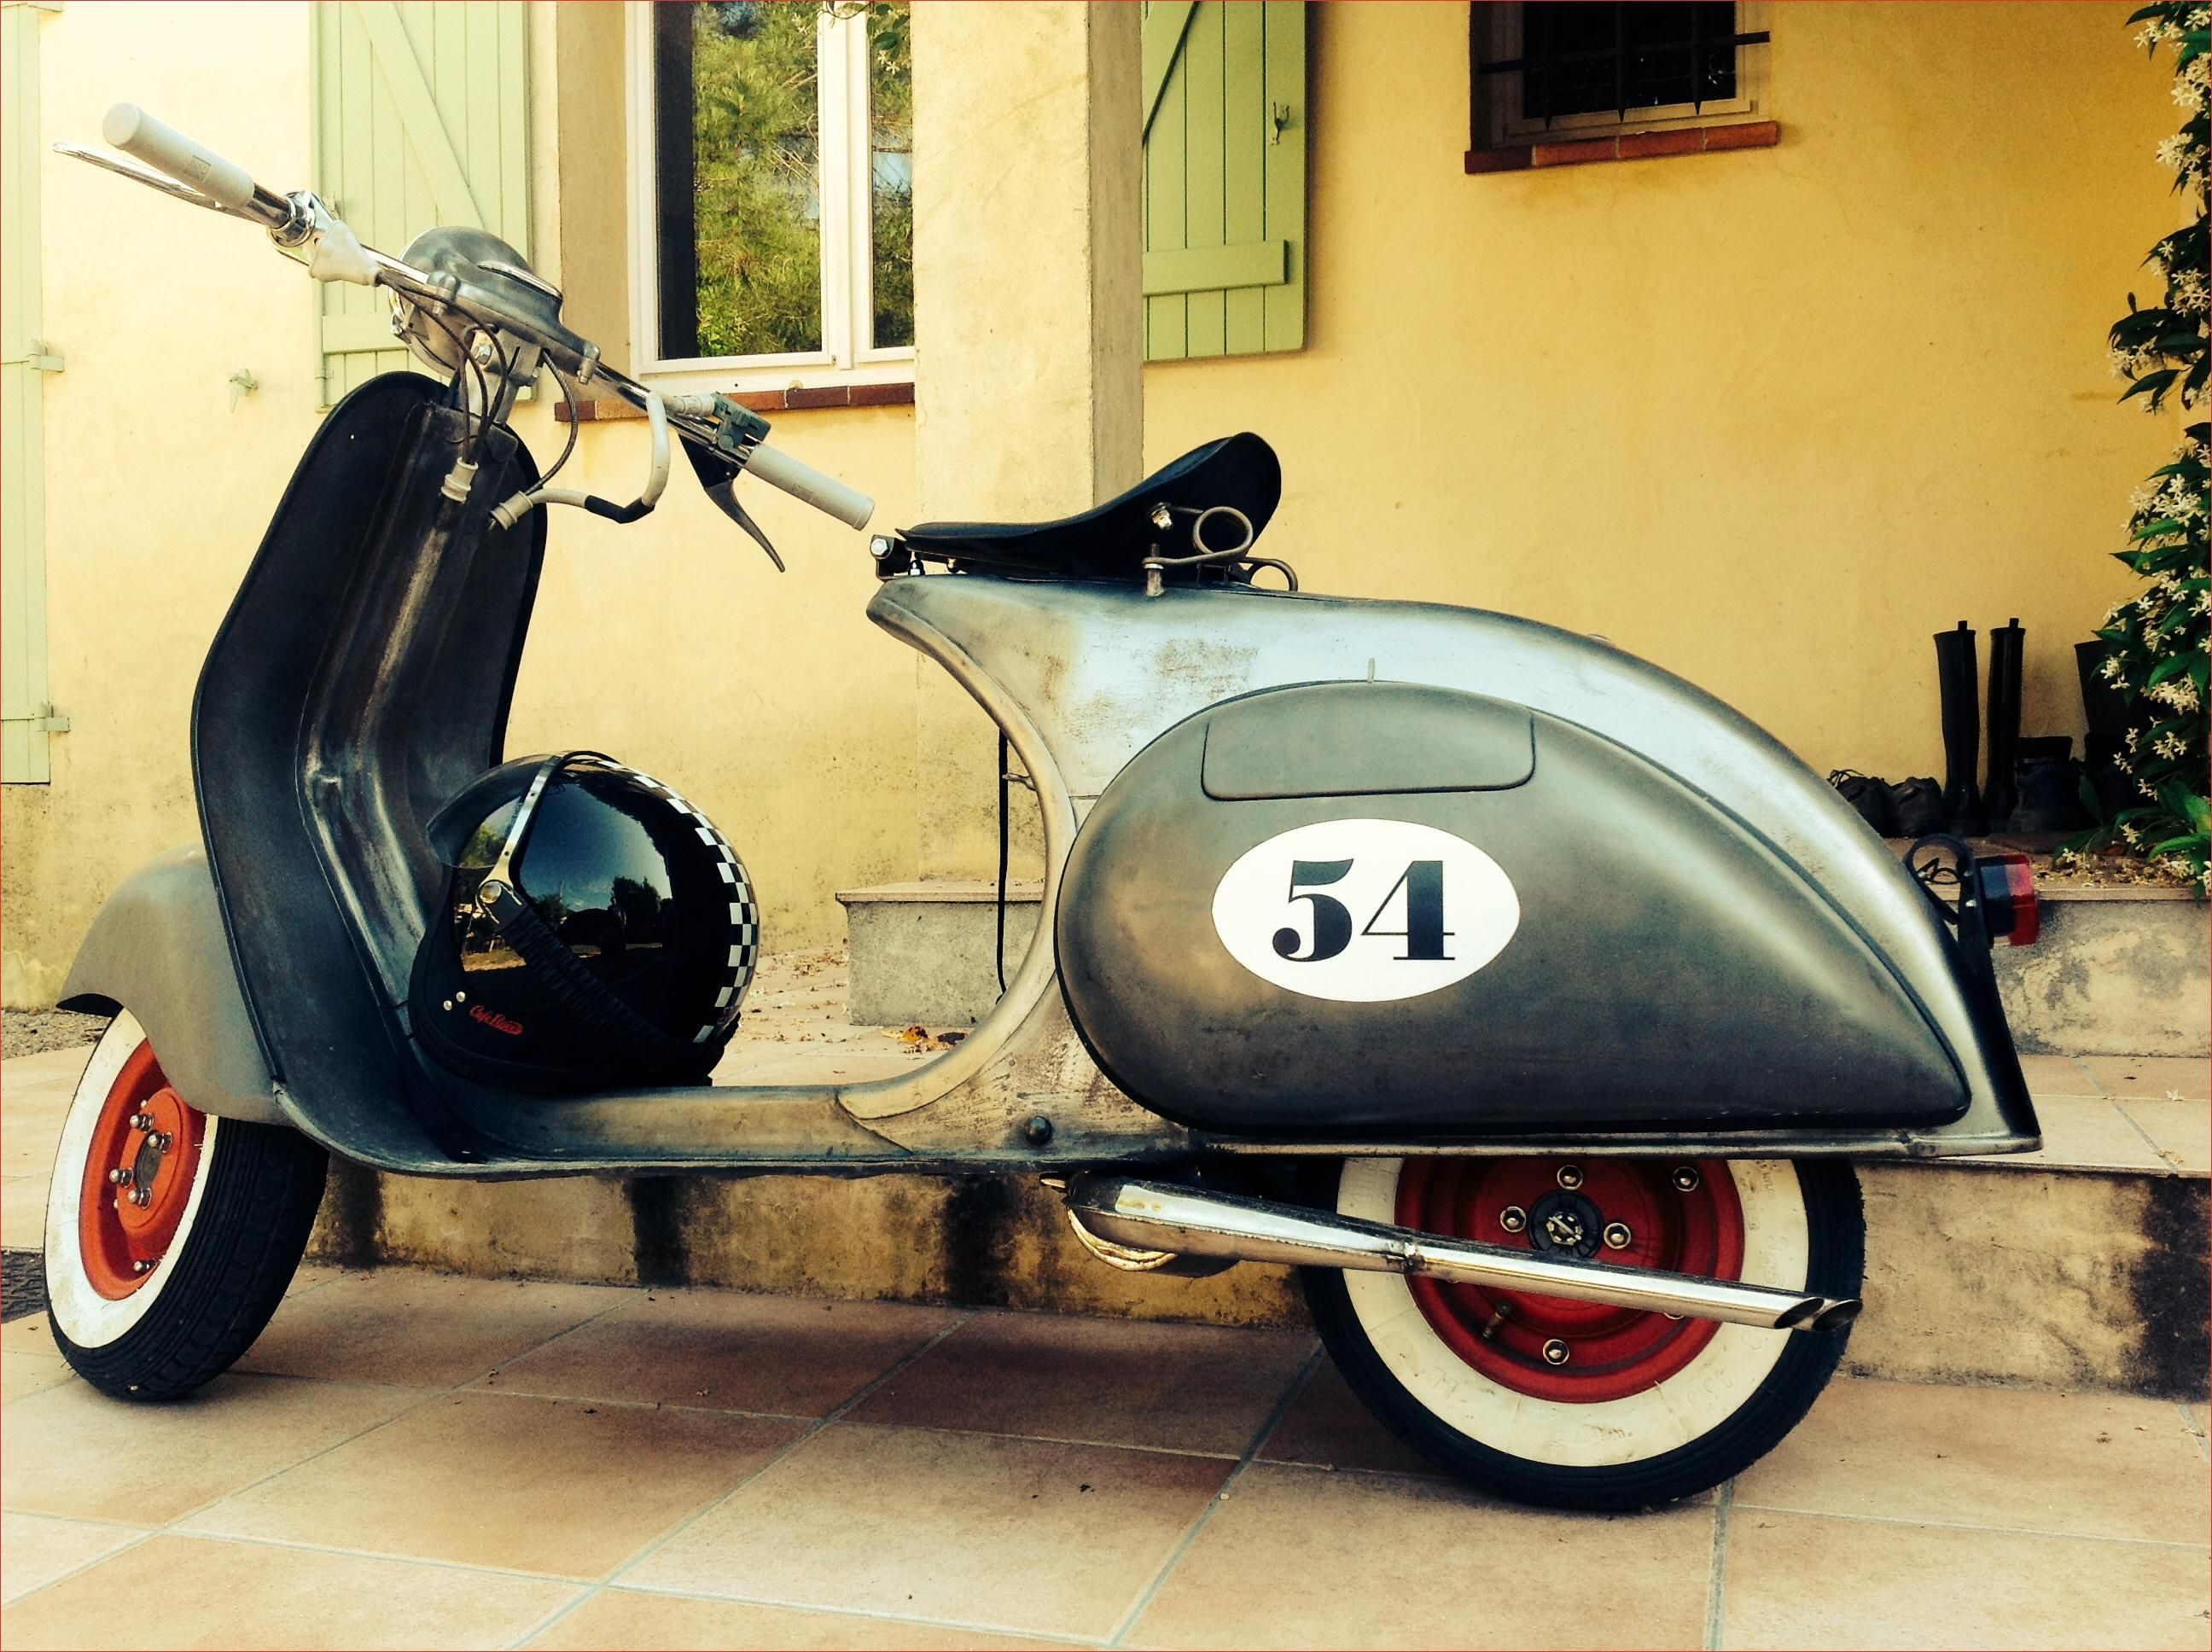 Elegant Vespa Scooters Vintage Retro With 14 Photos We Otomotive Info Vespa Scooters Vespa Retro Vespa Vintage